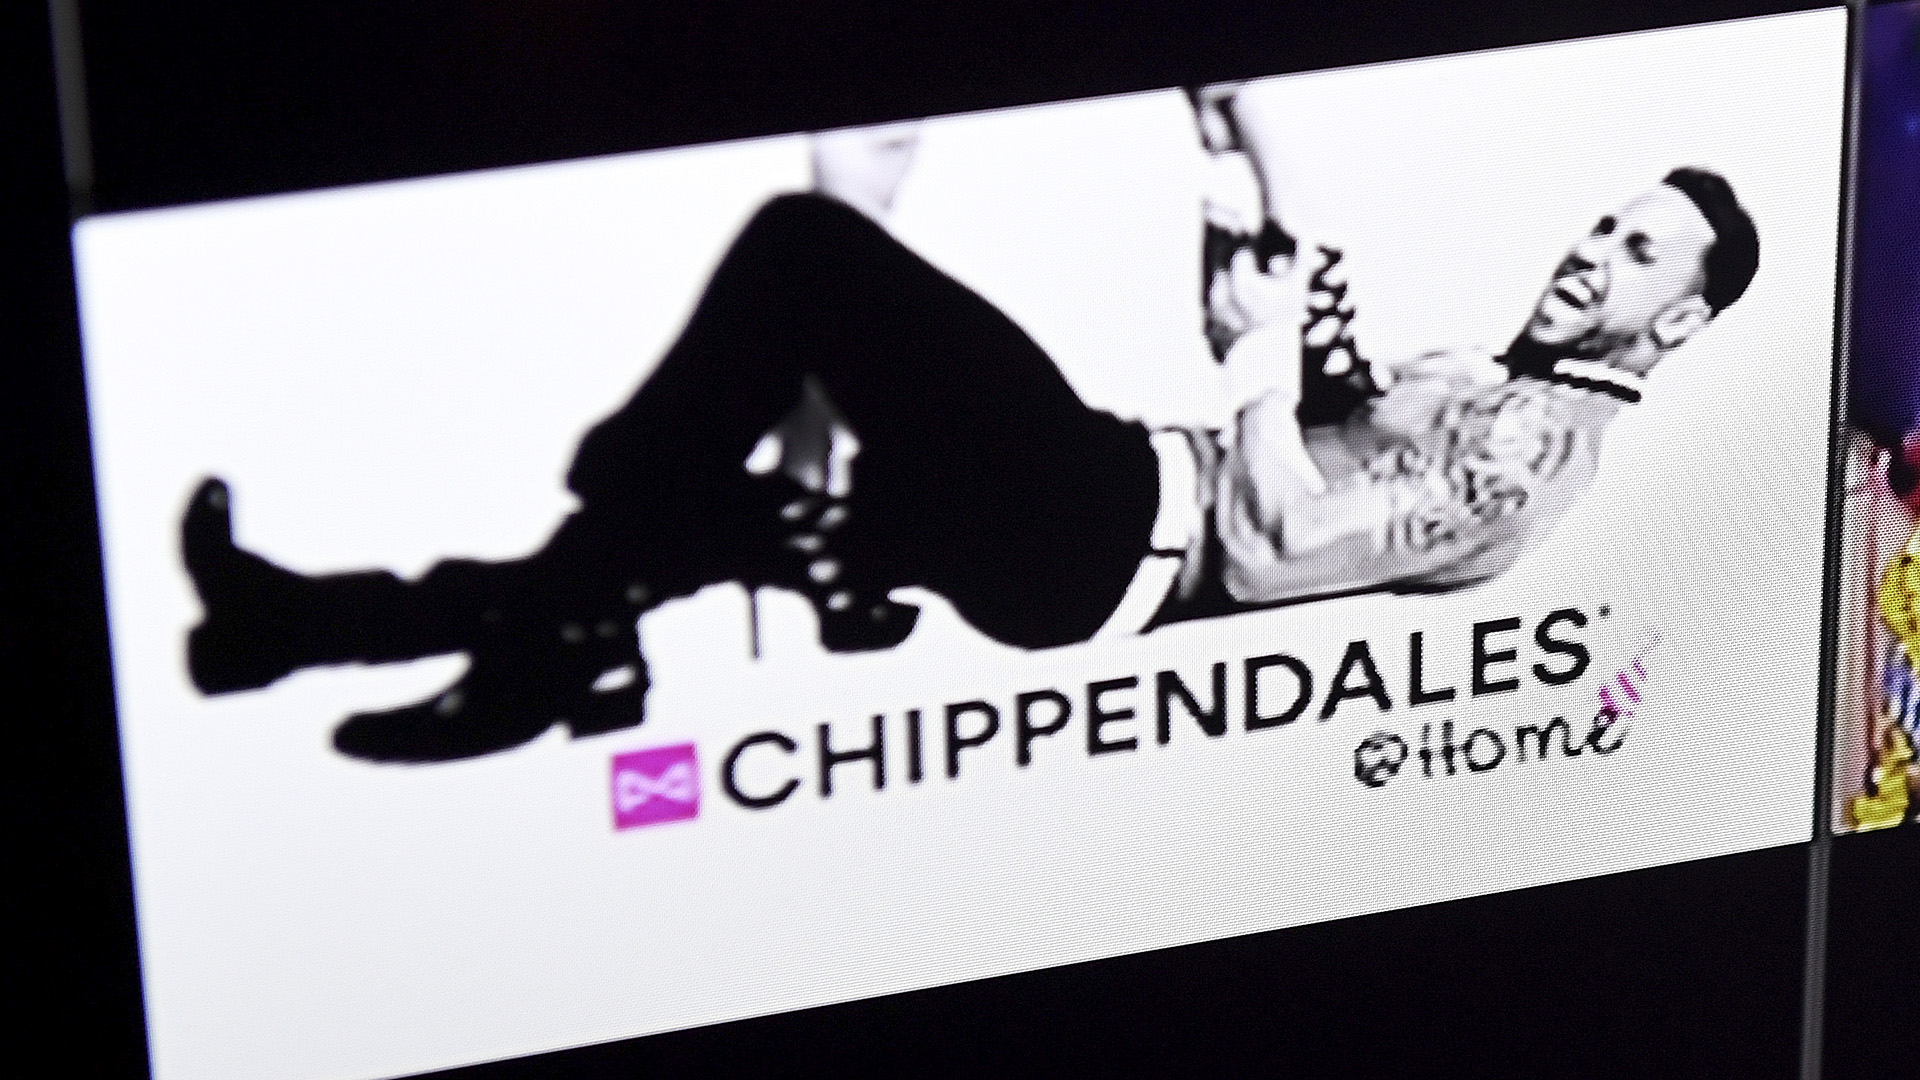 Chippendales: An Indian Immigrant's Crime Diary Gets Showbiz Spin